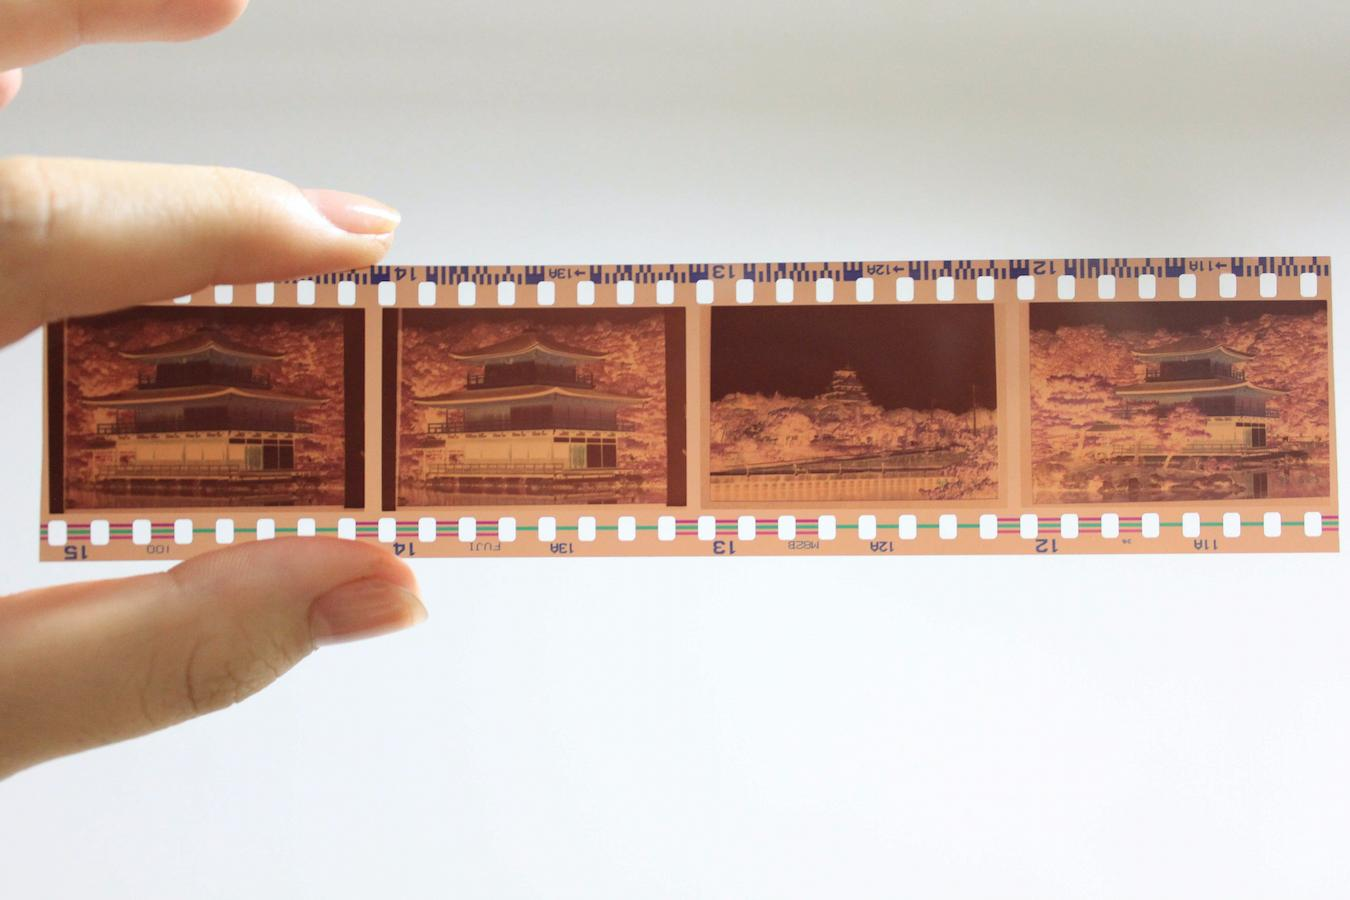 How to convert super 8 film to digital